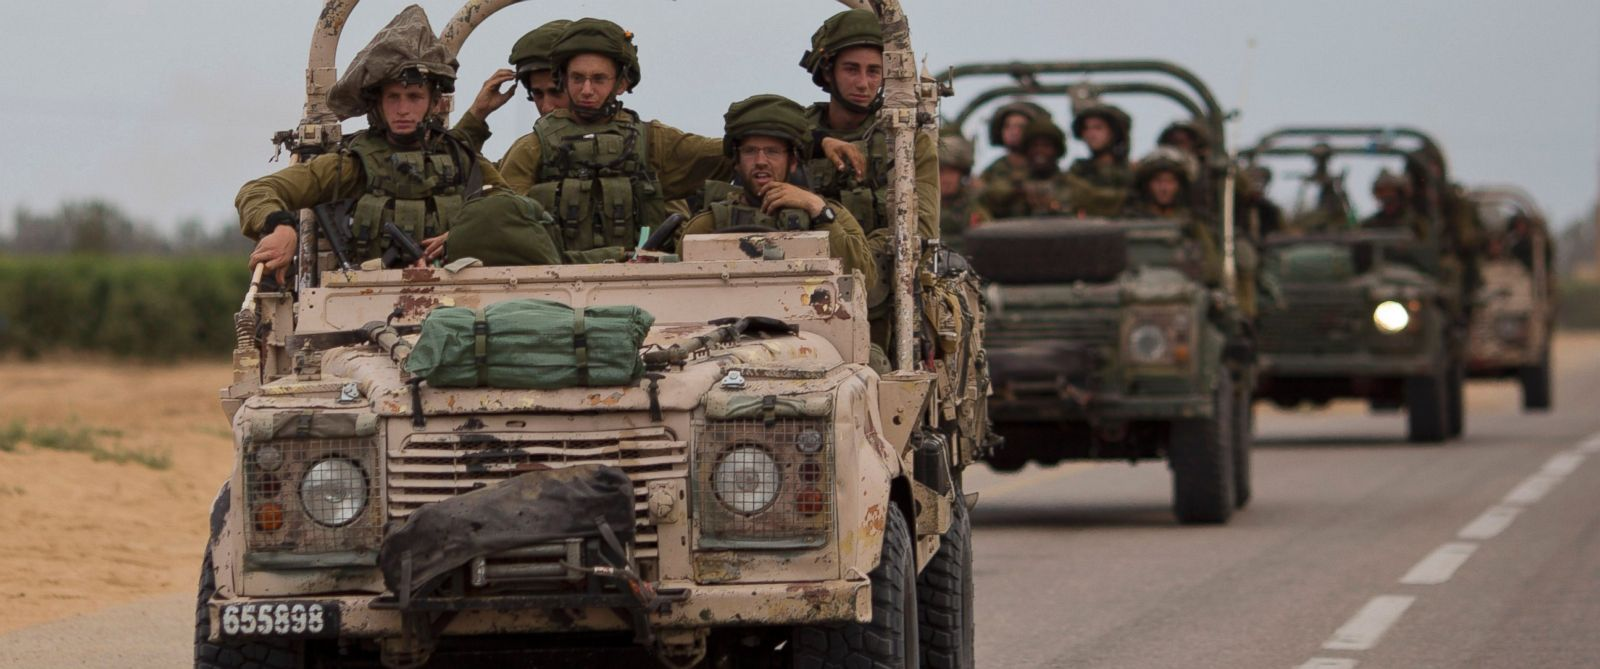 PHOTO: Israeli soldiers ride on a military vehicle near the Israel-Gaza Border, Thursday, July 17, 2014.